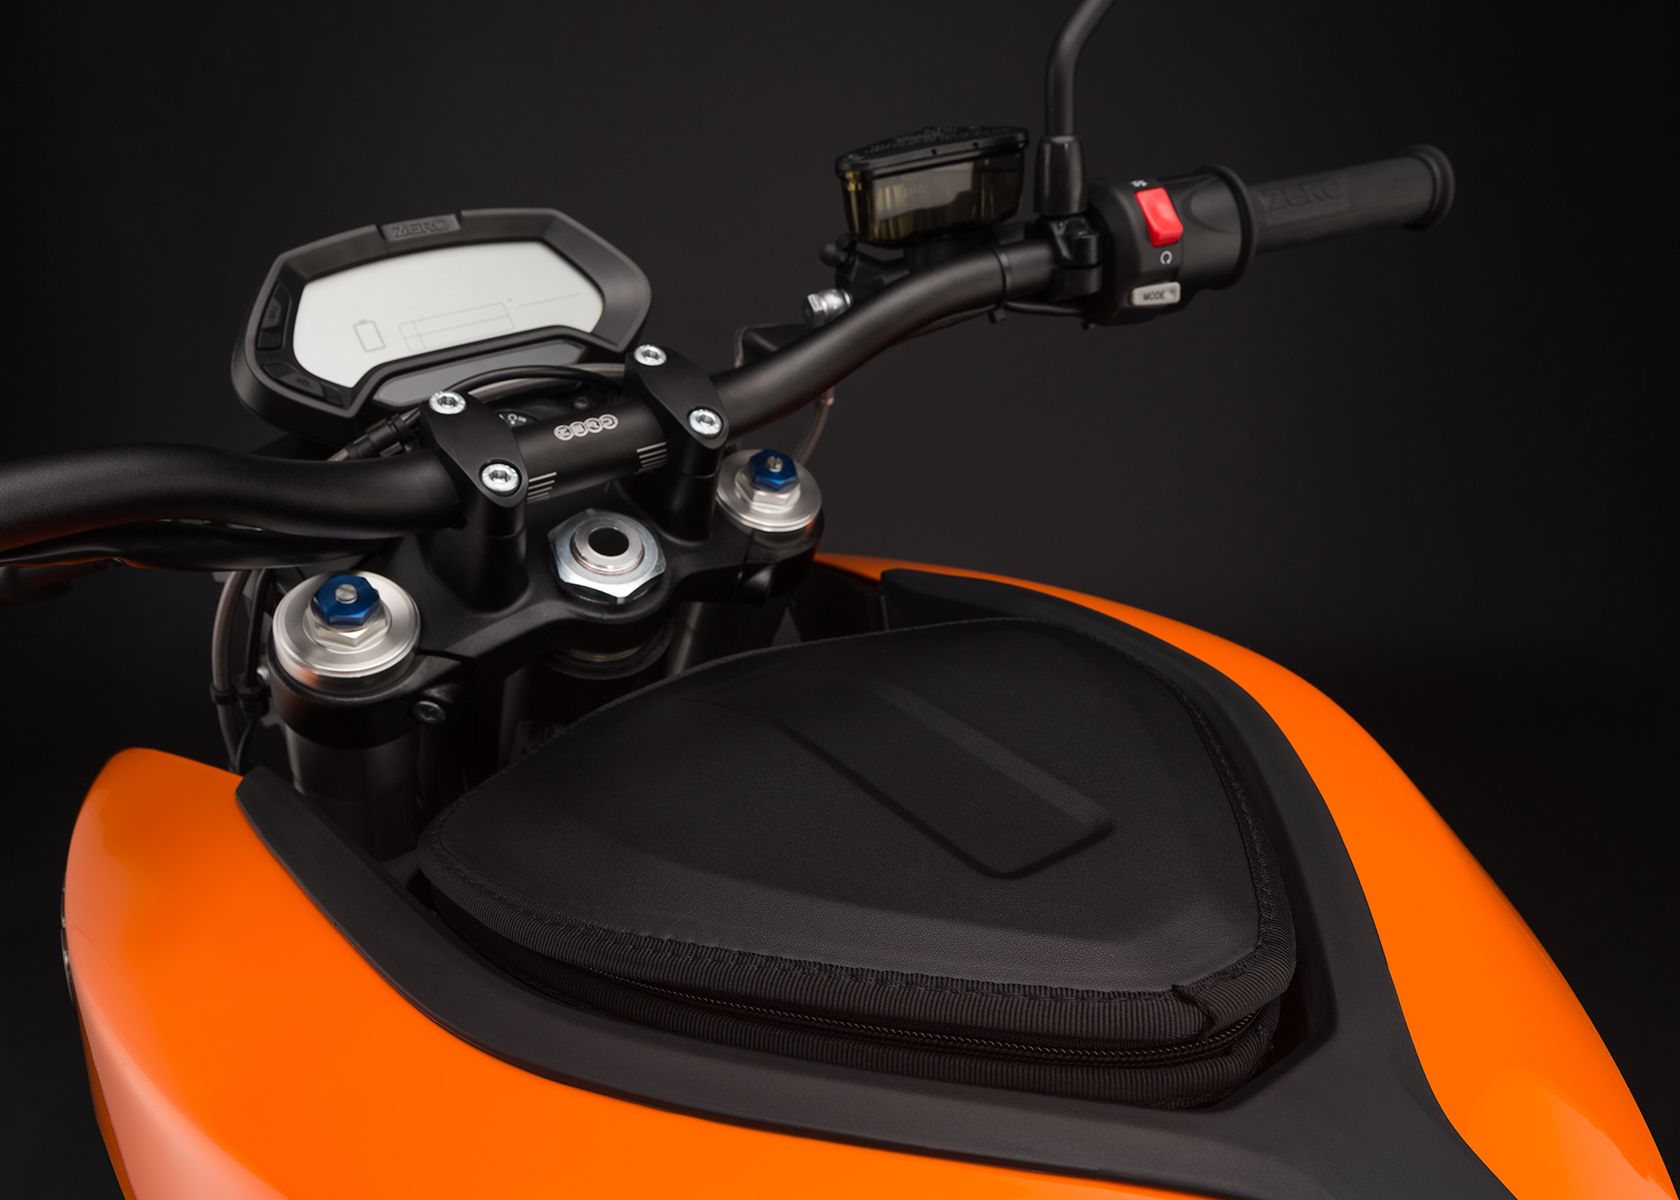 2015 Zero DS Electric Motorcycle: Power Tank